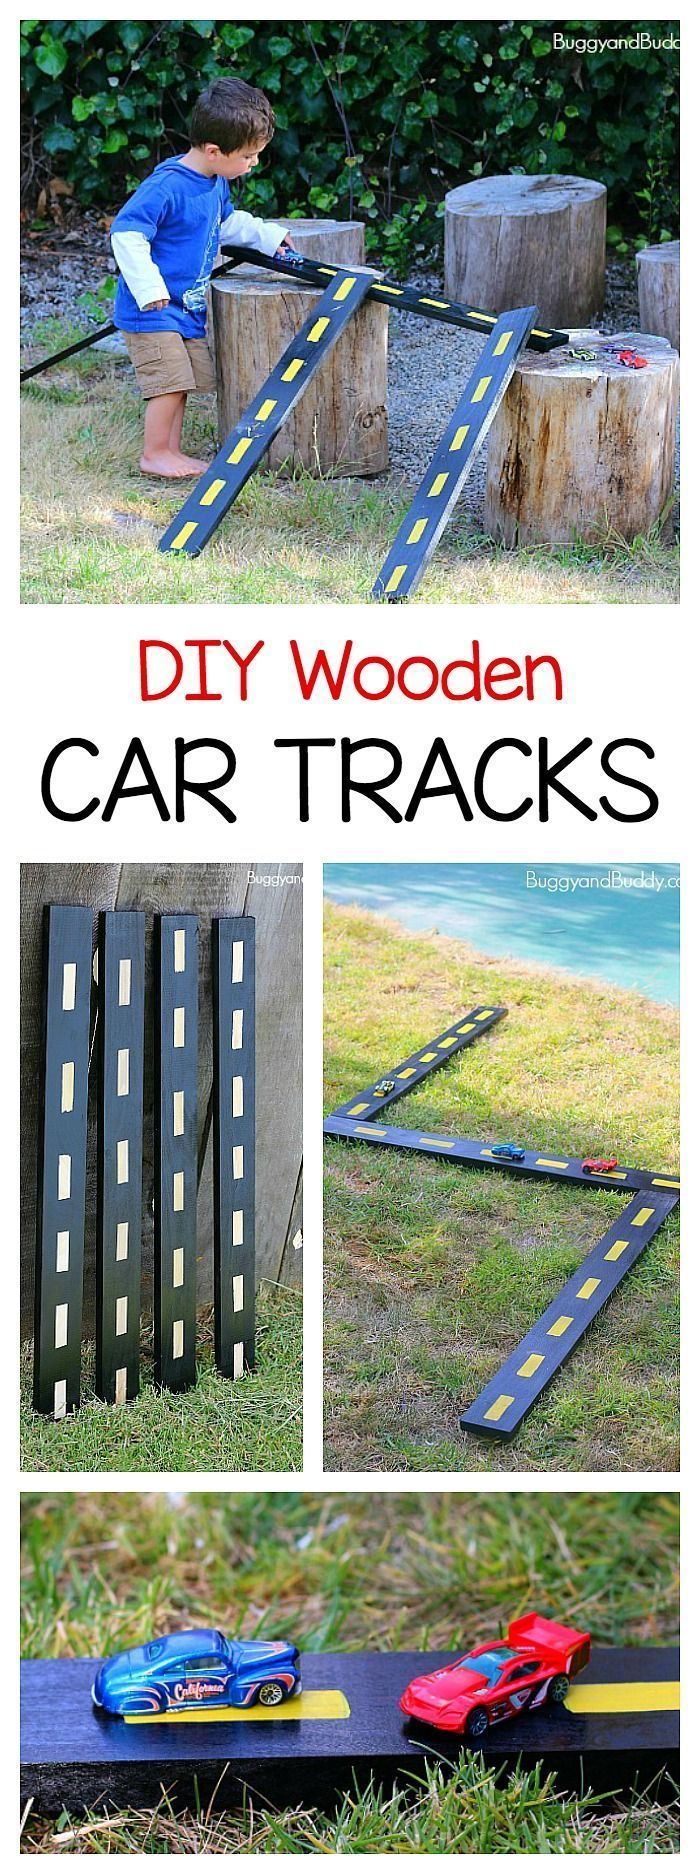 DIY Wooden Roads and Ramps for Toy Cars - Buggy and Buddy